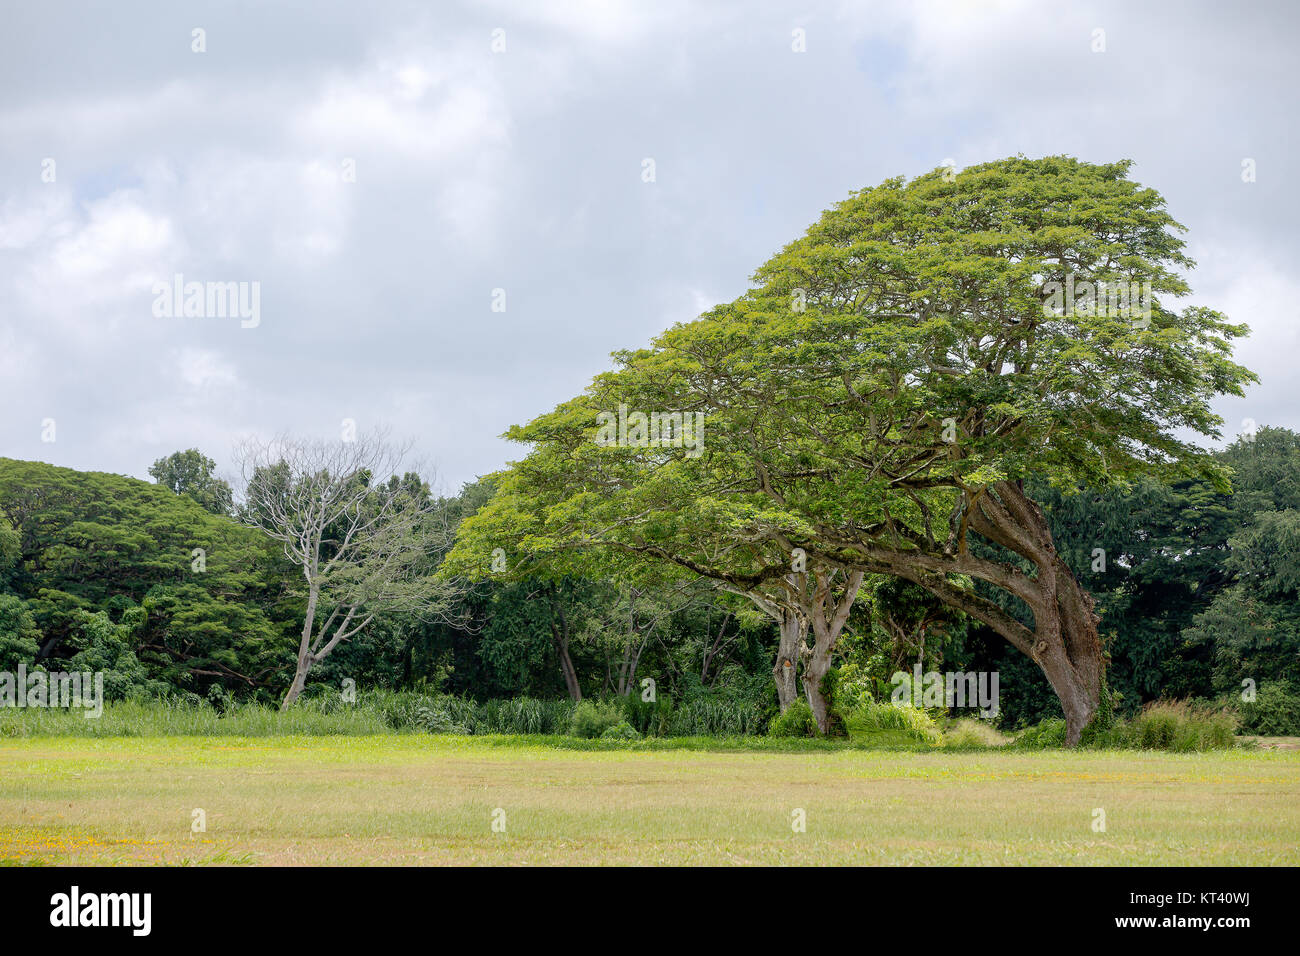 Large monkeypod tree, Albizia saman, in Oahu, Hawaii growing in a field at the edge of a forest leaning towards Stock Photo